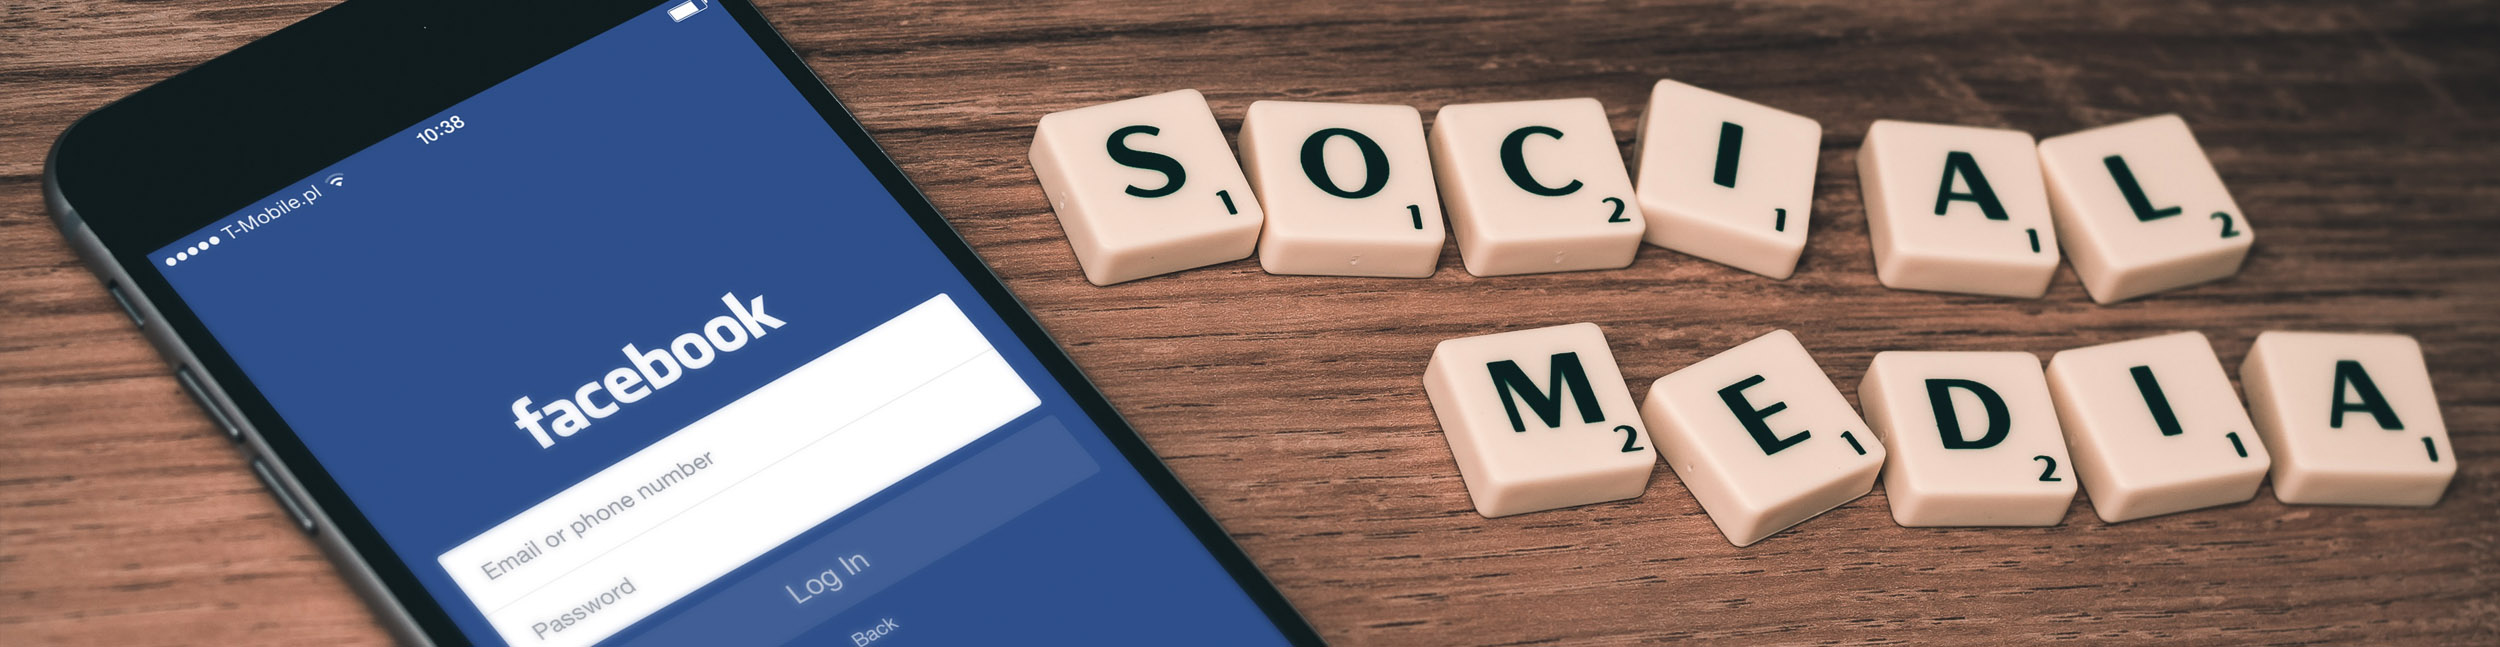 iPhone with Facebook log-in display near Social Media scrabble tiles